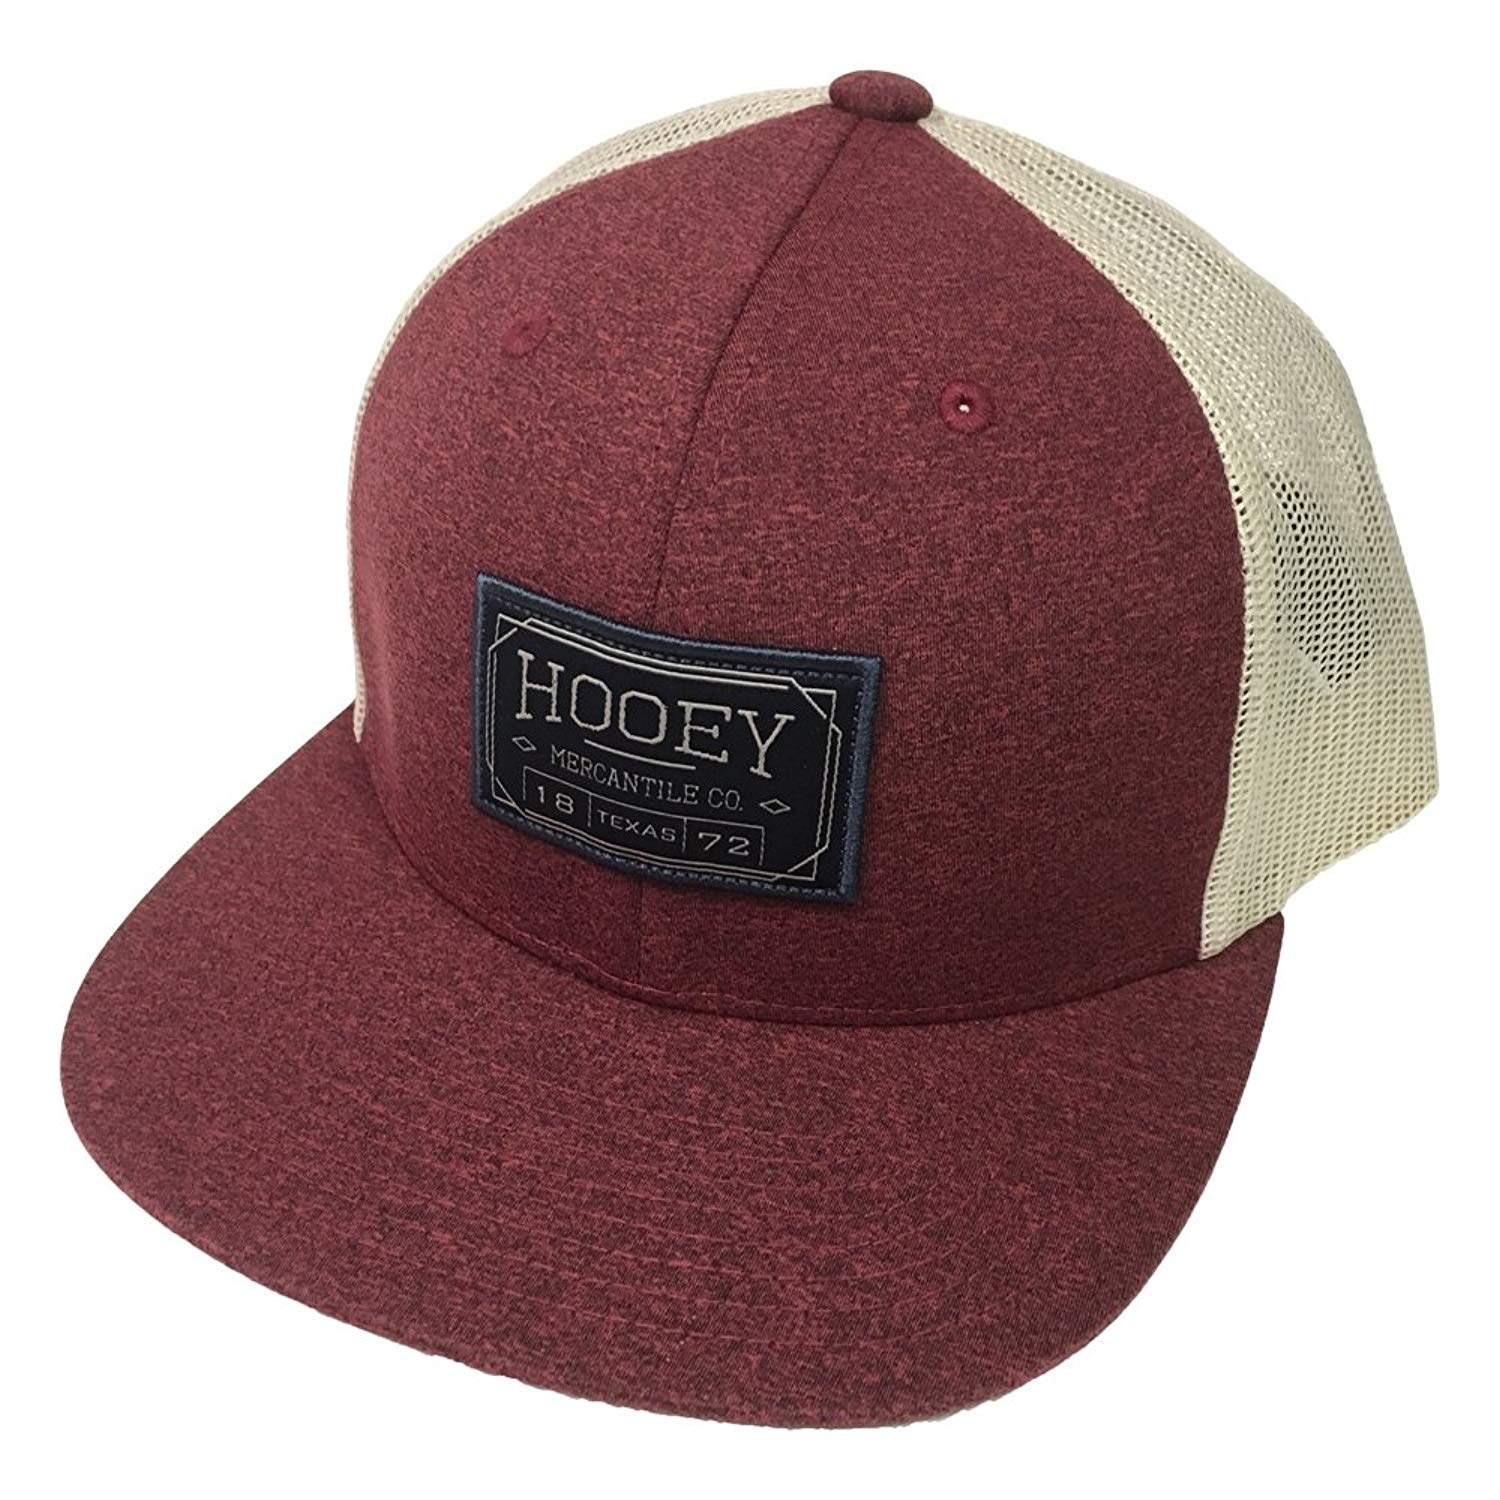 low priced 7efc1 d709e ... low cost get quotations hooey brand doc maroon cream snapback hat 1803t  macr b66d6 d69f2